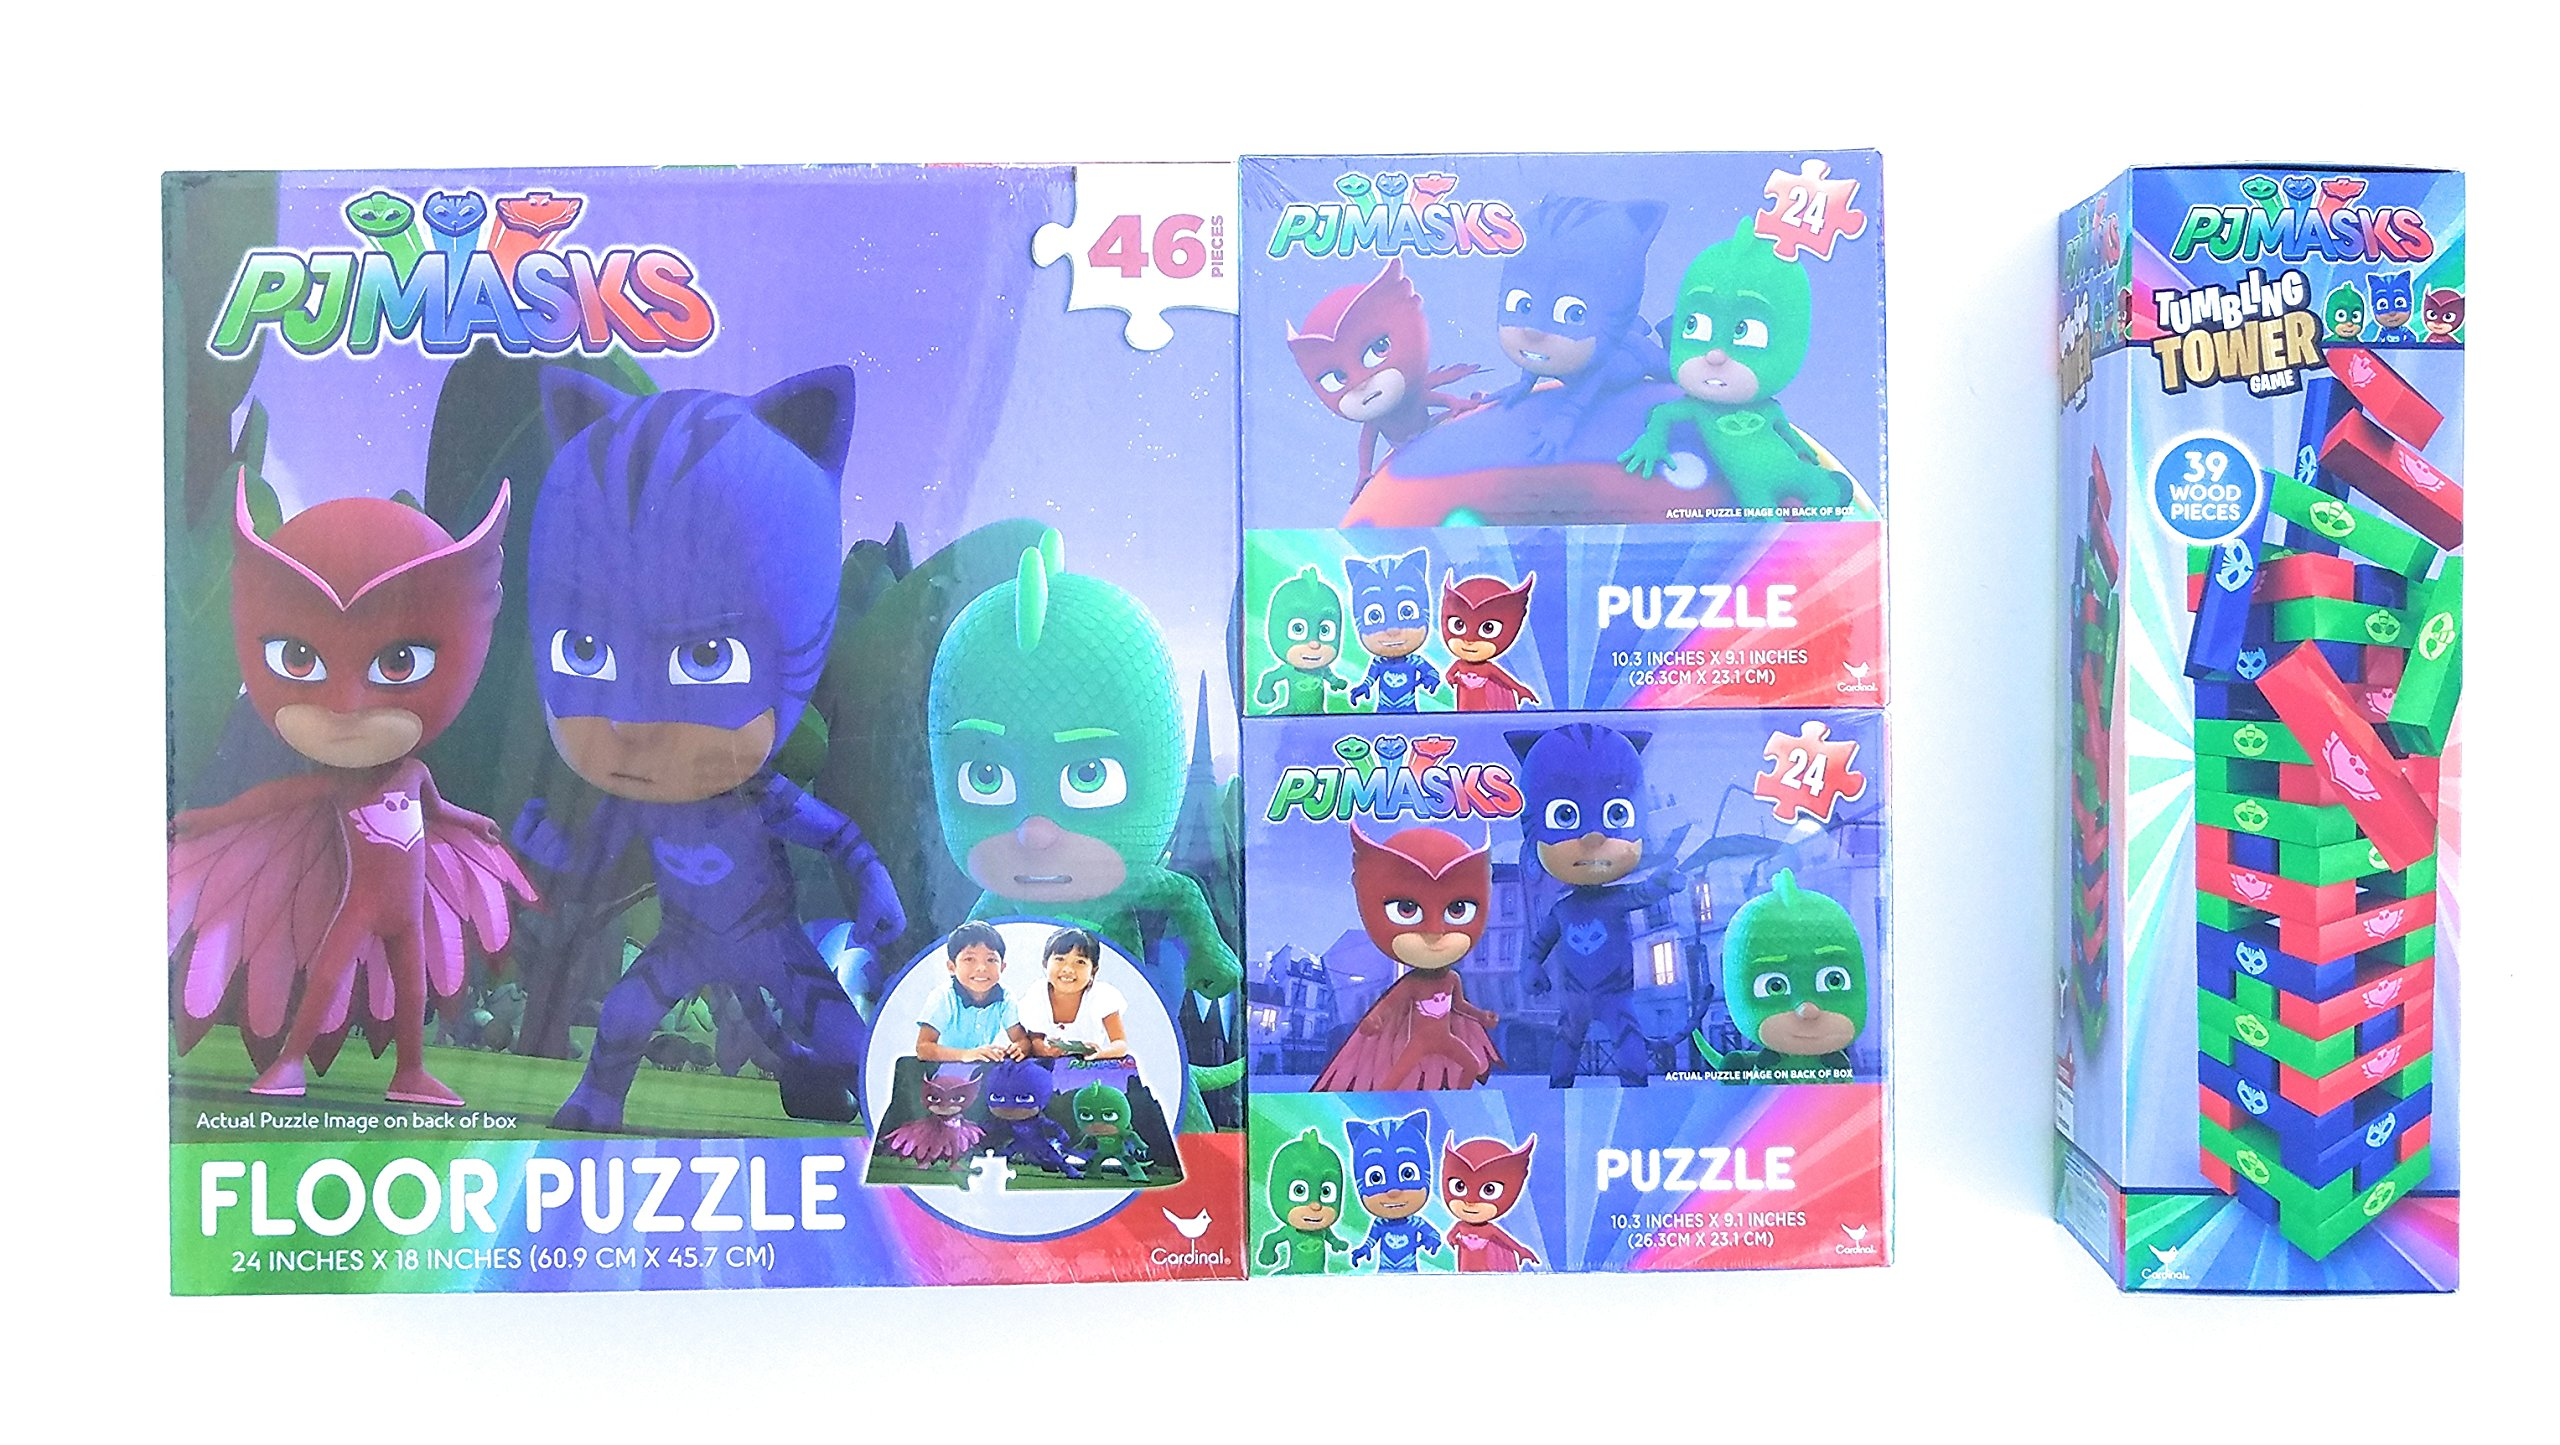 PJ Masks Puzzle and Tumbling Tower Bundle - Includes 3 Puzzles and 1 Game - Perfect For Christmas!